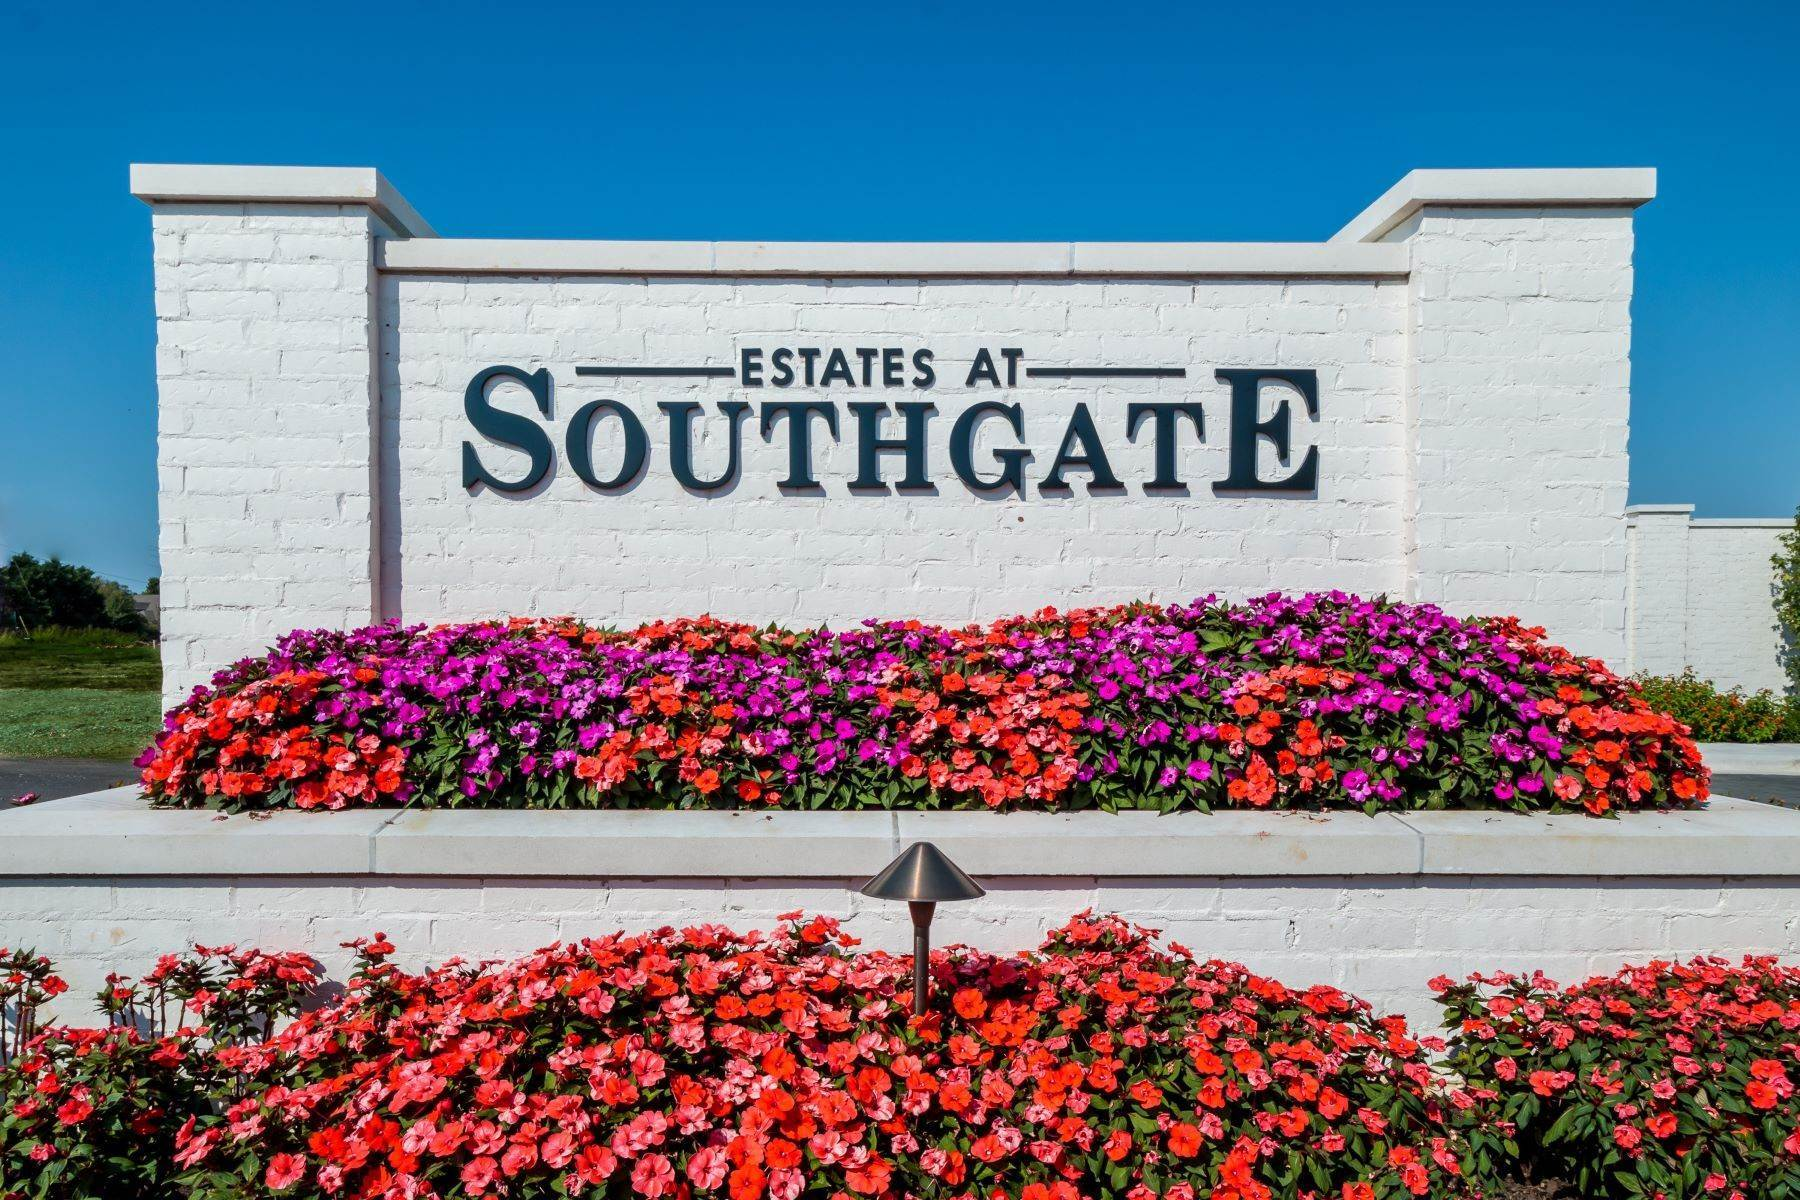 Land for Sale at Lot 6 Estates at Southgate 4810 Southgate Estates Circle Rogers, Arkansas 72758 United States